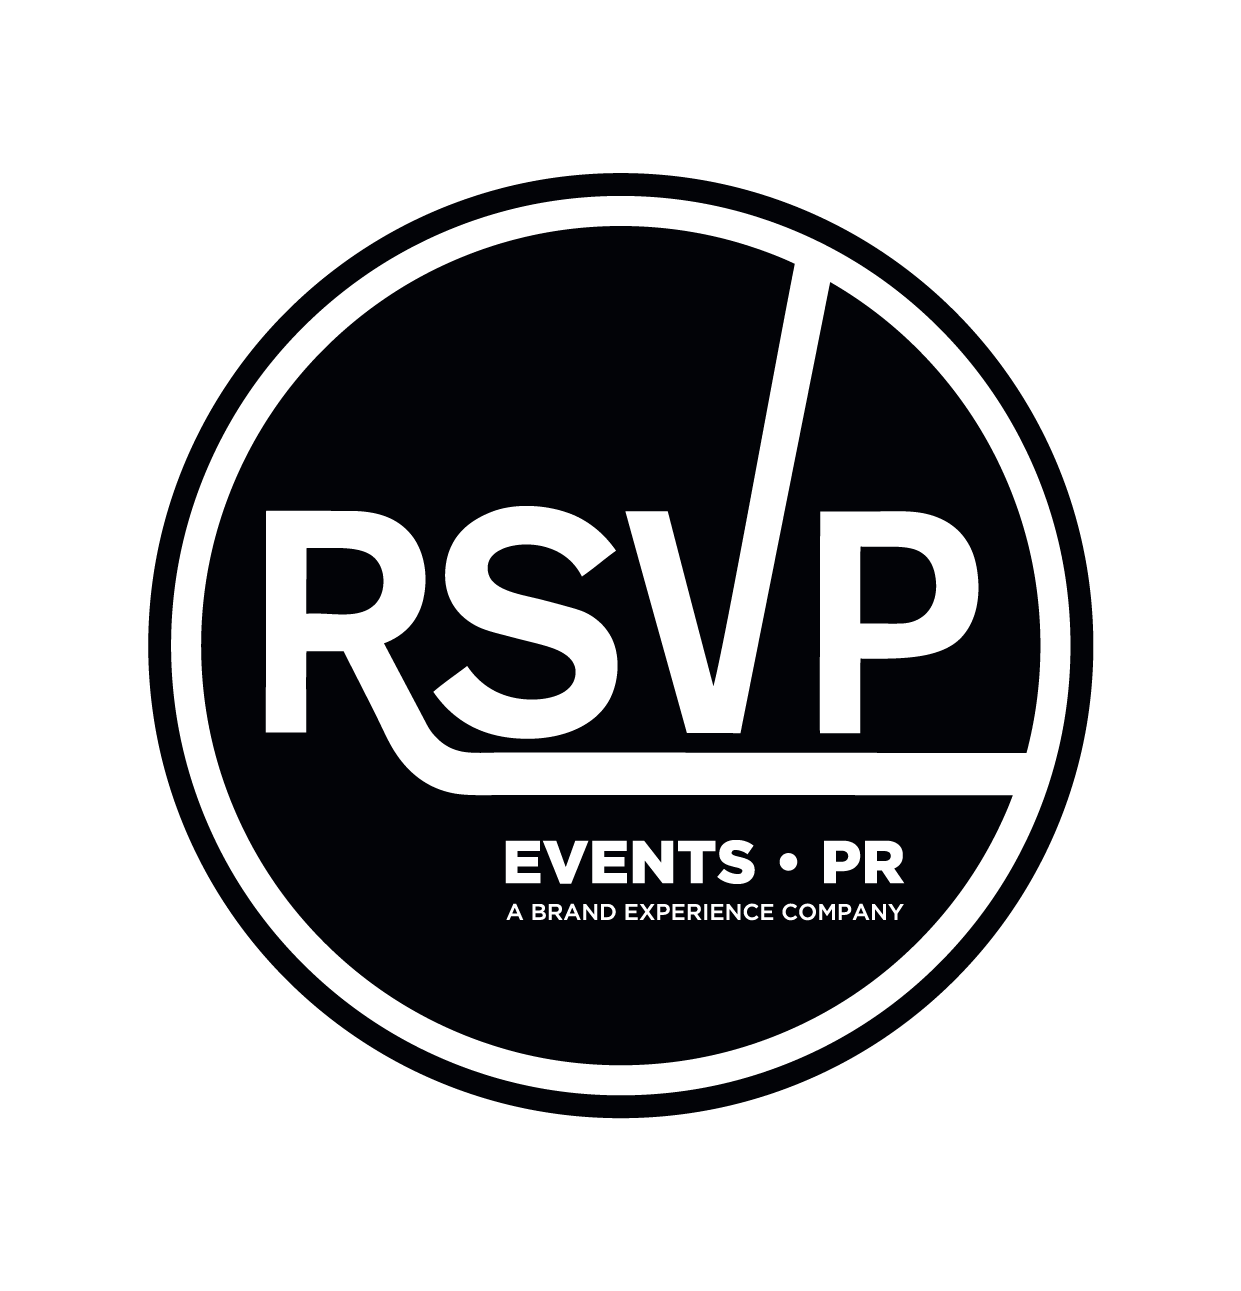 Logo RSVP Event-PR new-01.png